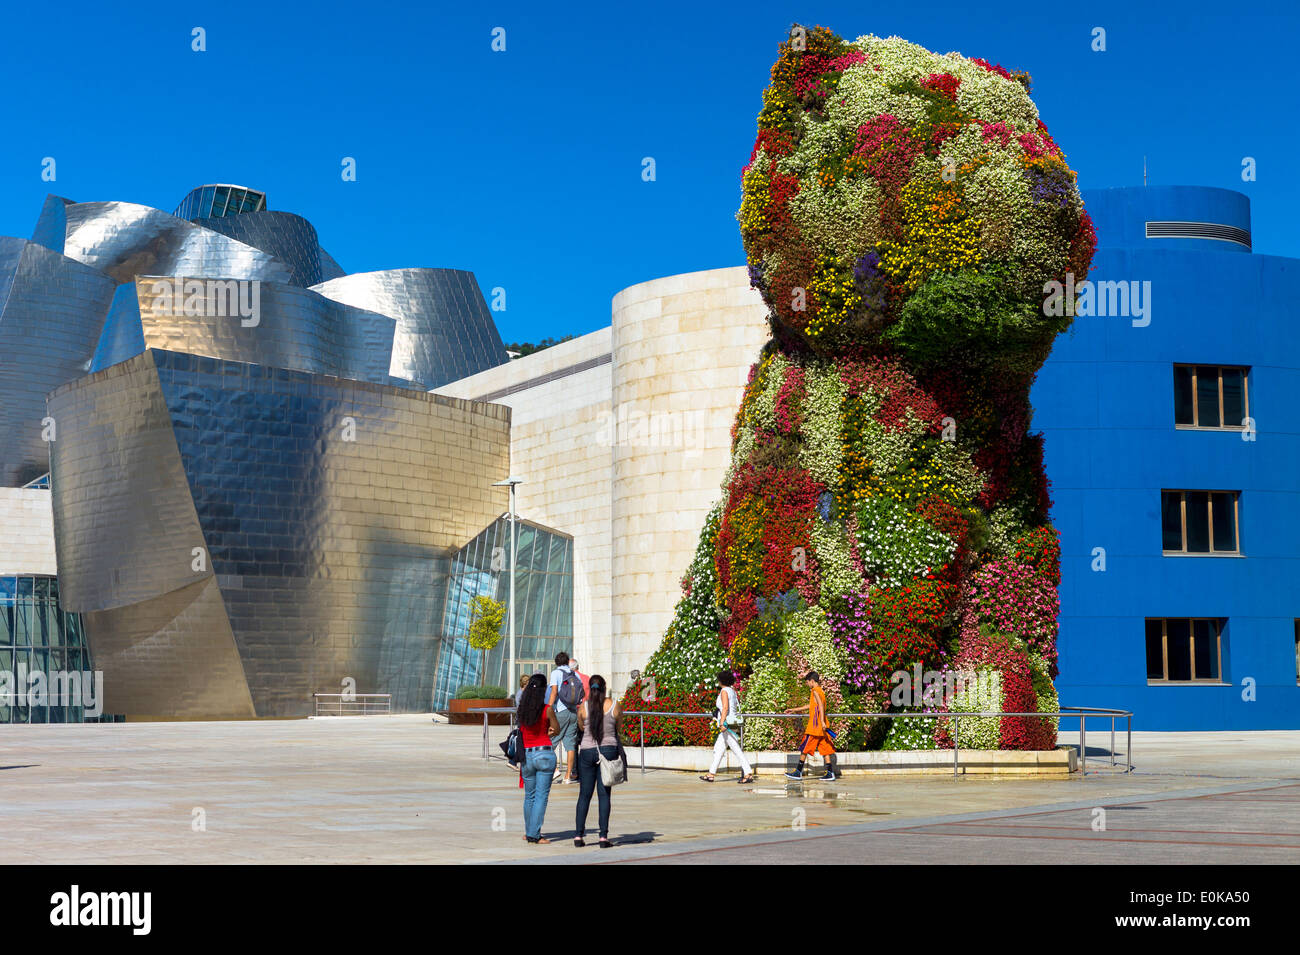 Tourists view Puppy flower feature floral art by Jeff Koons at Guggenheim Museum in Bilbao, Basque Country, Spain - Stock Image